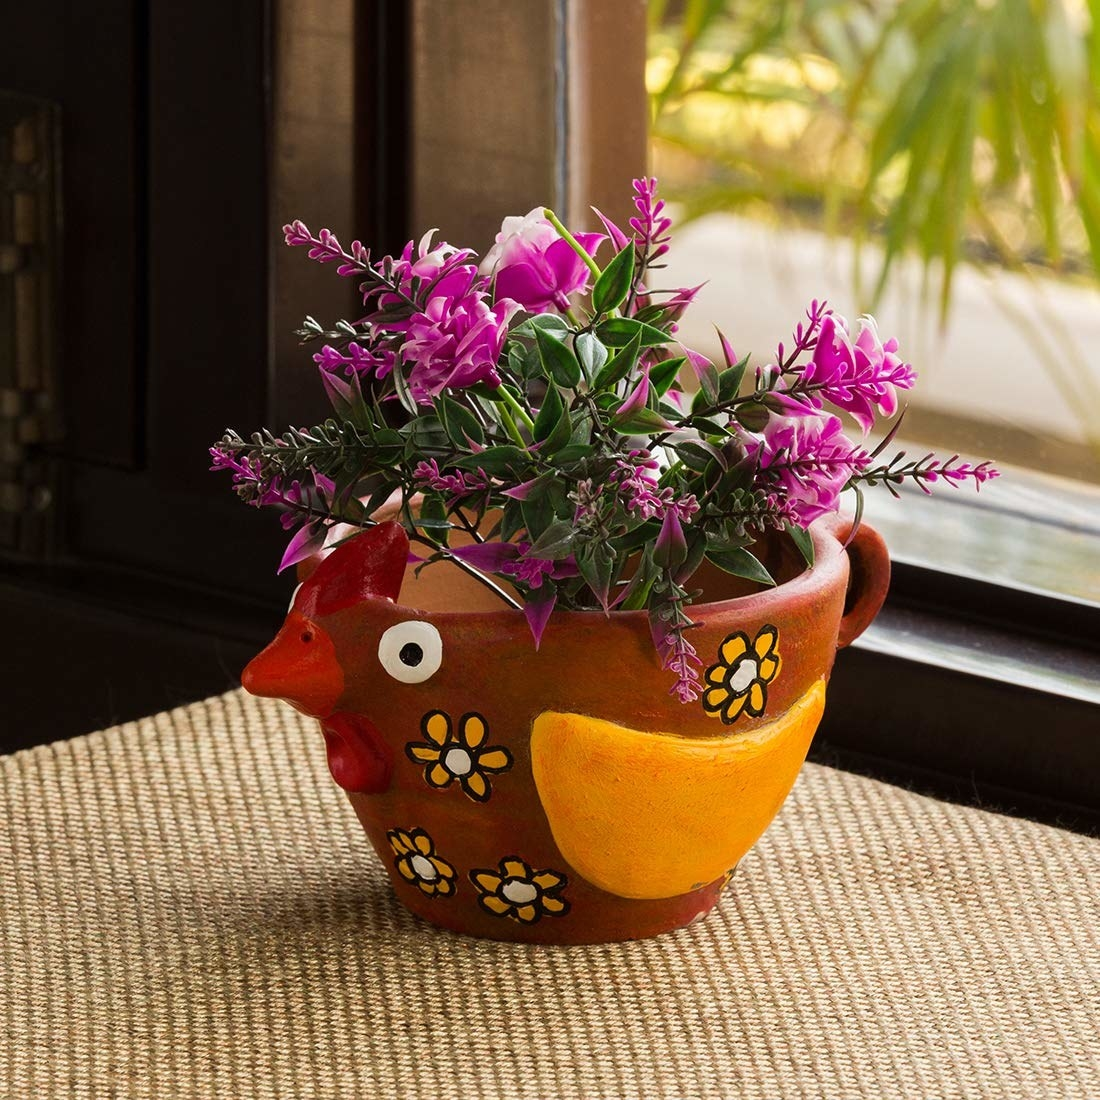 The terracotta planter painted to look like a bird with a red beak, yellow wings and whimsical flower all over it.